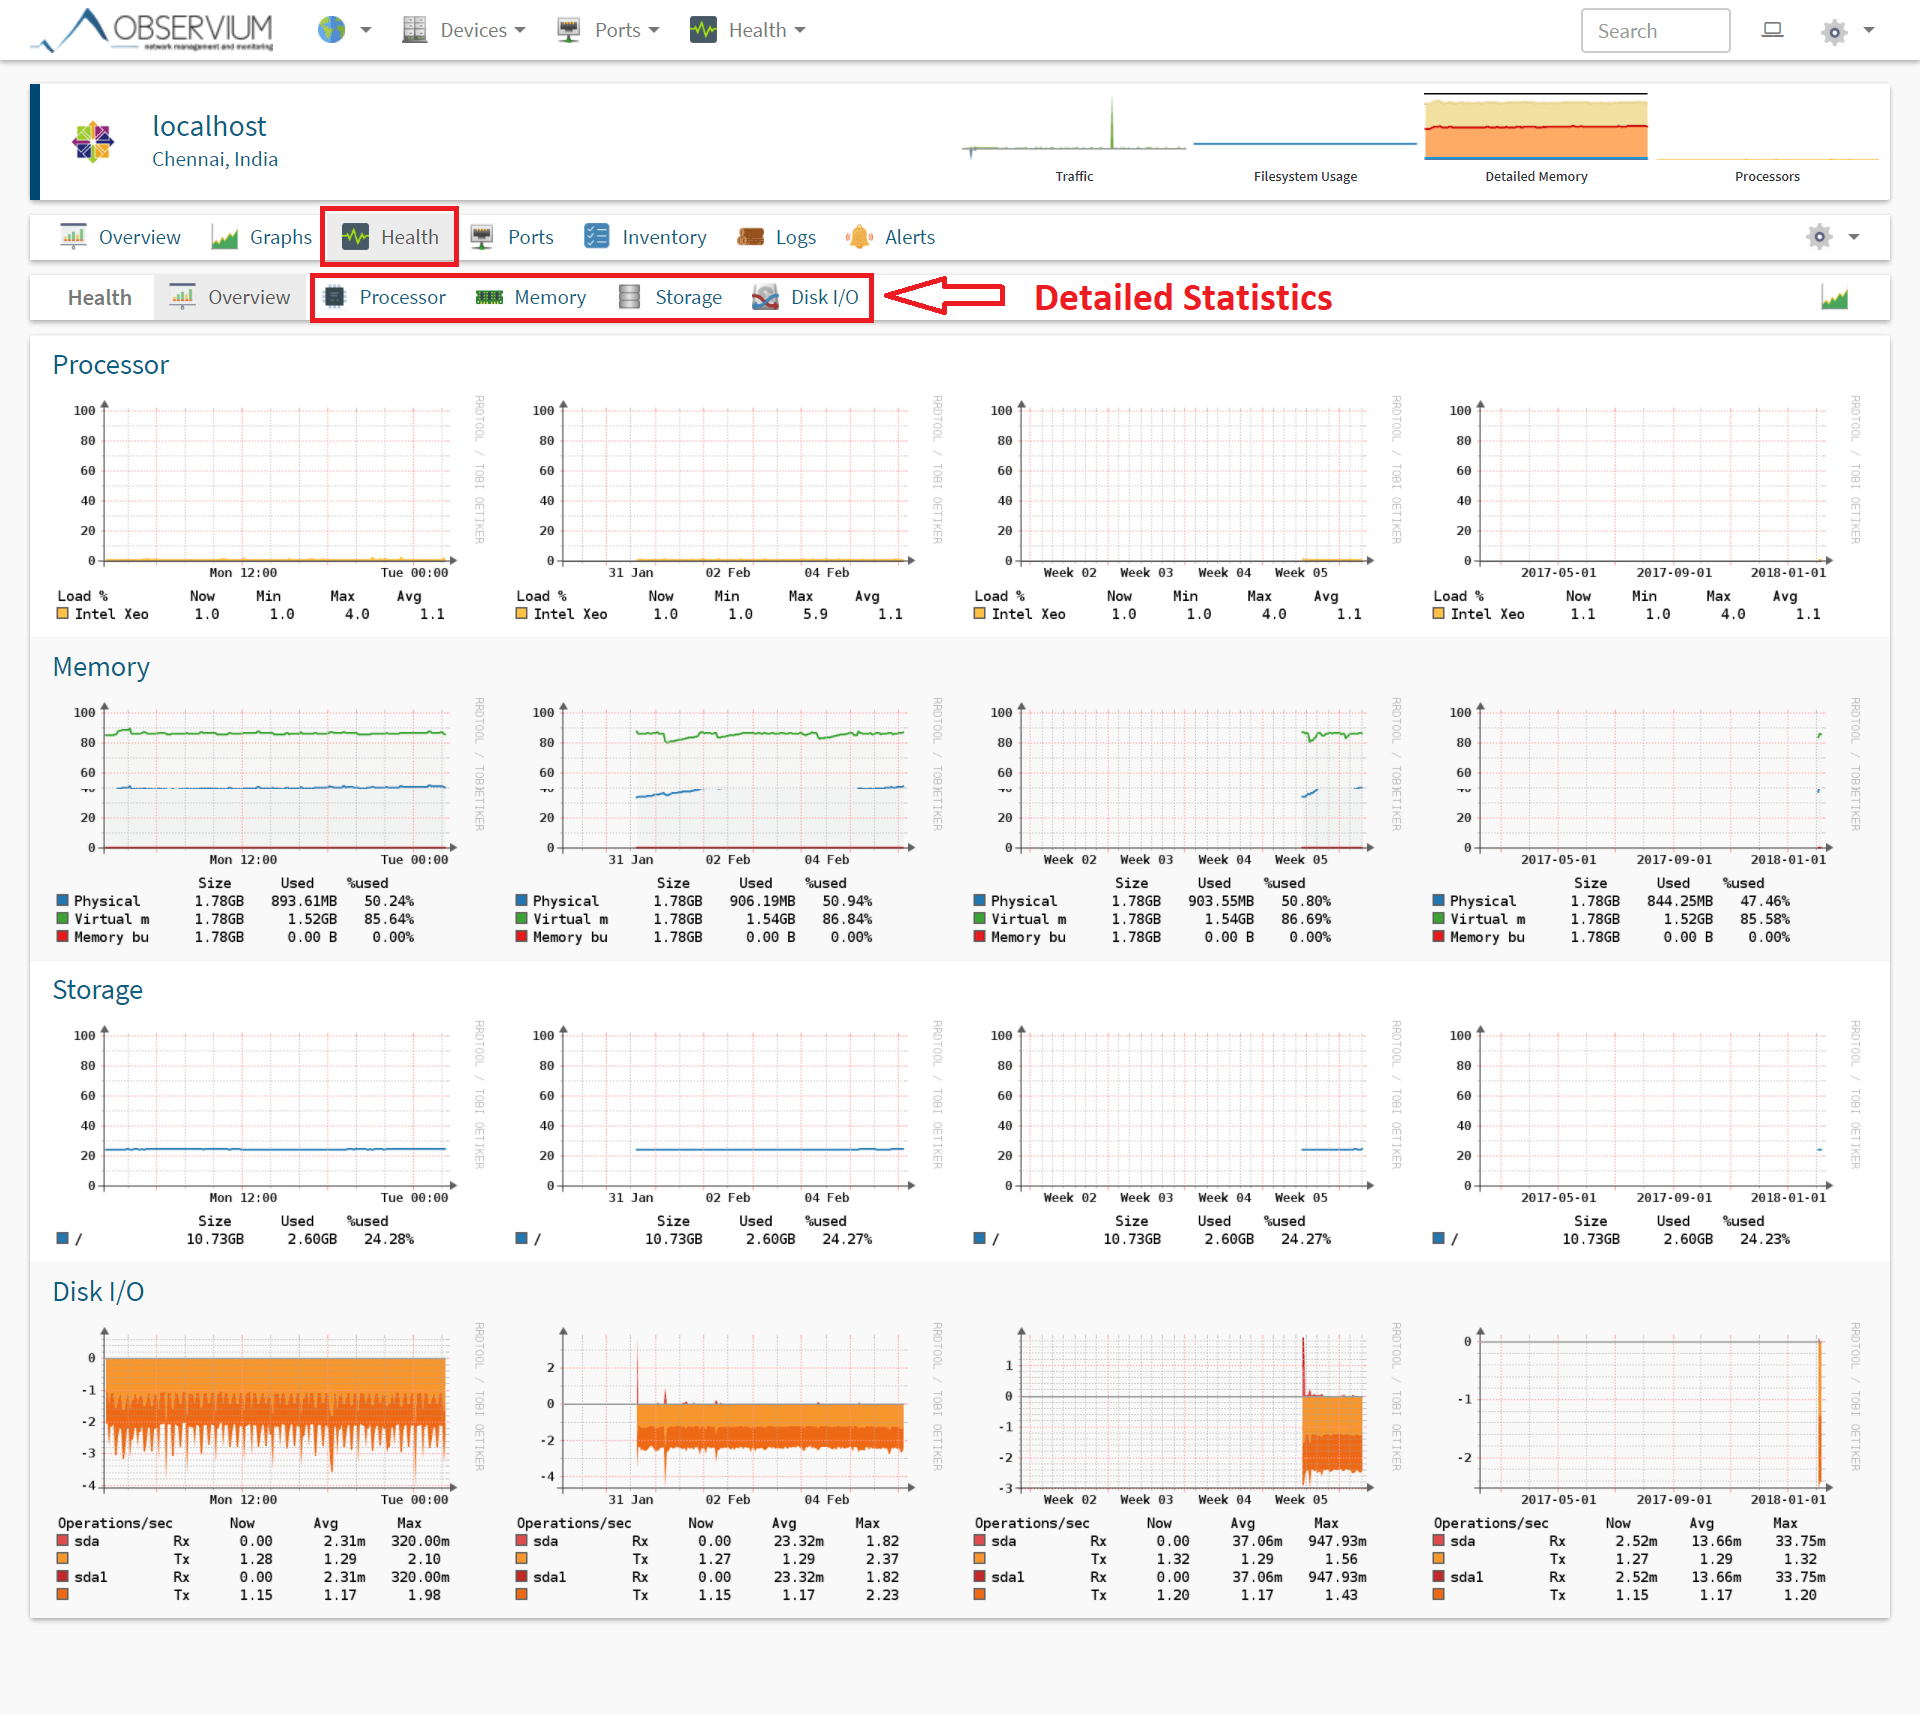 Monitor Linux Machines with Observium - System Health